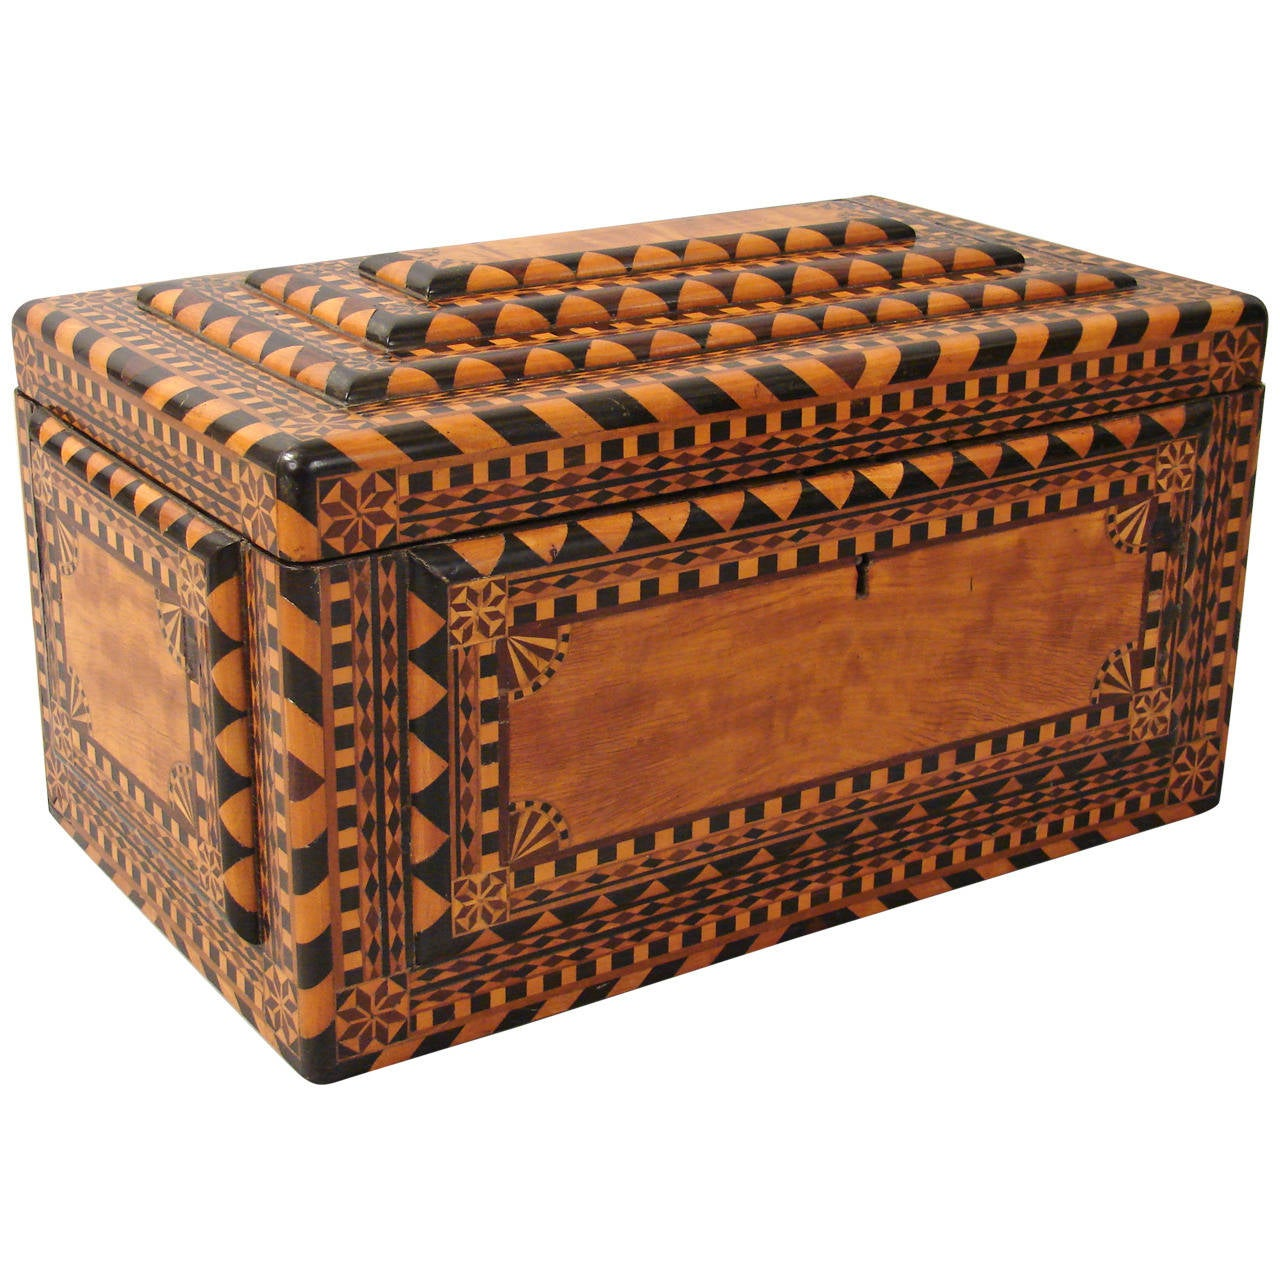 Fine And Large Continental Inlaid Satinwood Jewelry Box At